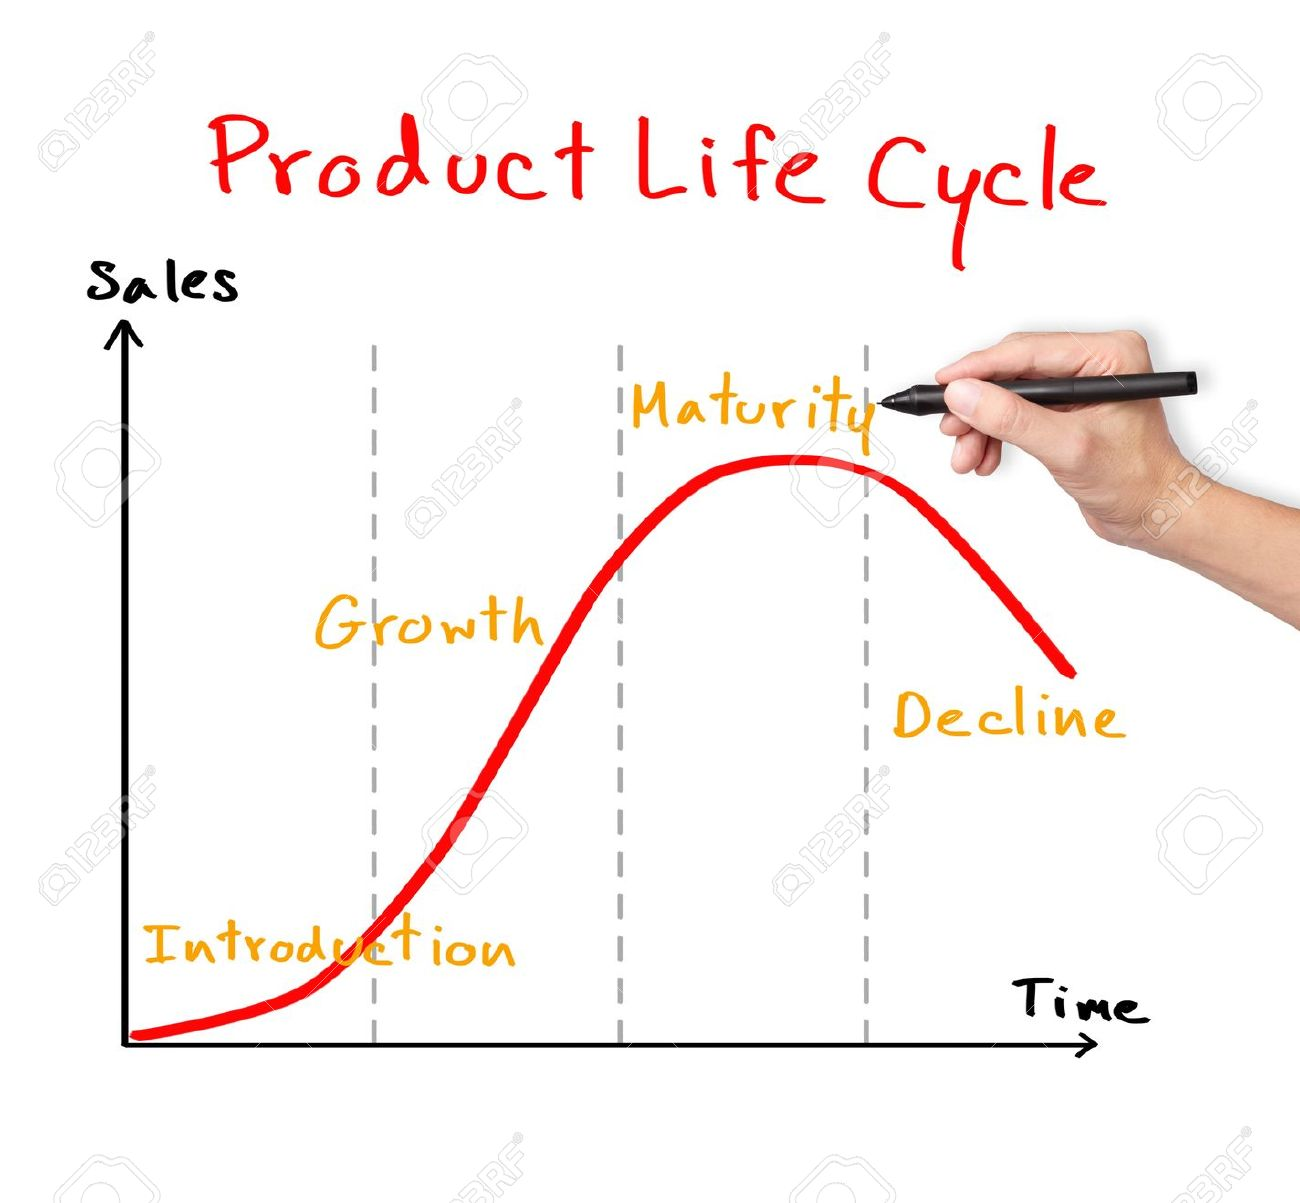 Business hand drawing product life cycle chart marketing concept business hand drawing product life cycle chart marketing concept stock photo 16248068 ccuart Images